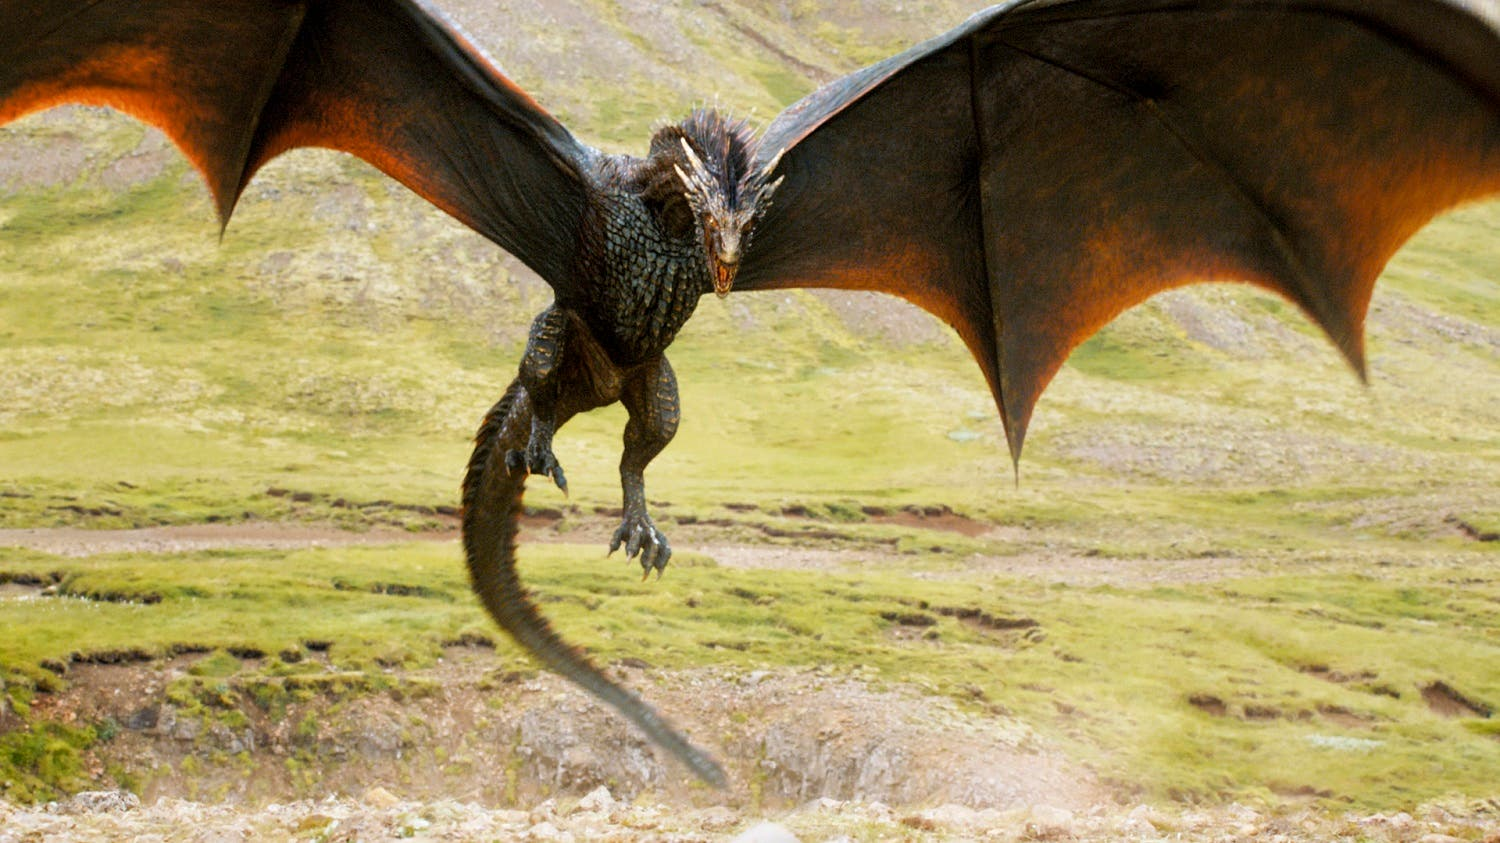 Dragons (Photo coursety: Game of Thrones)